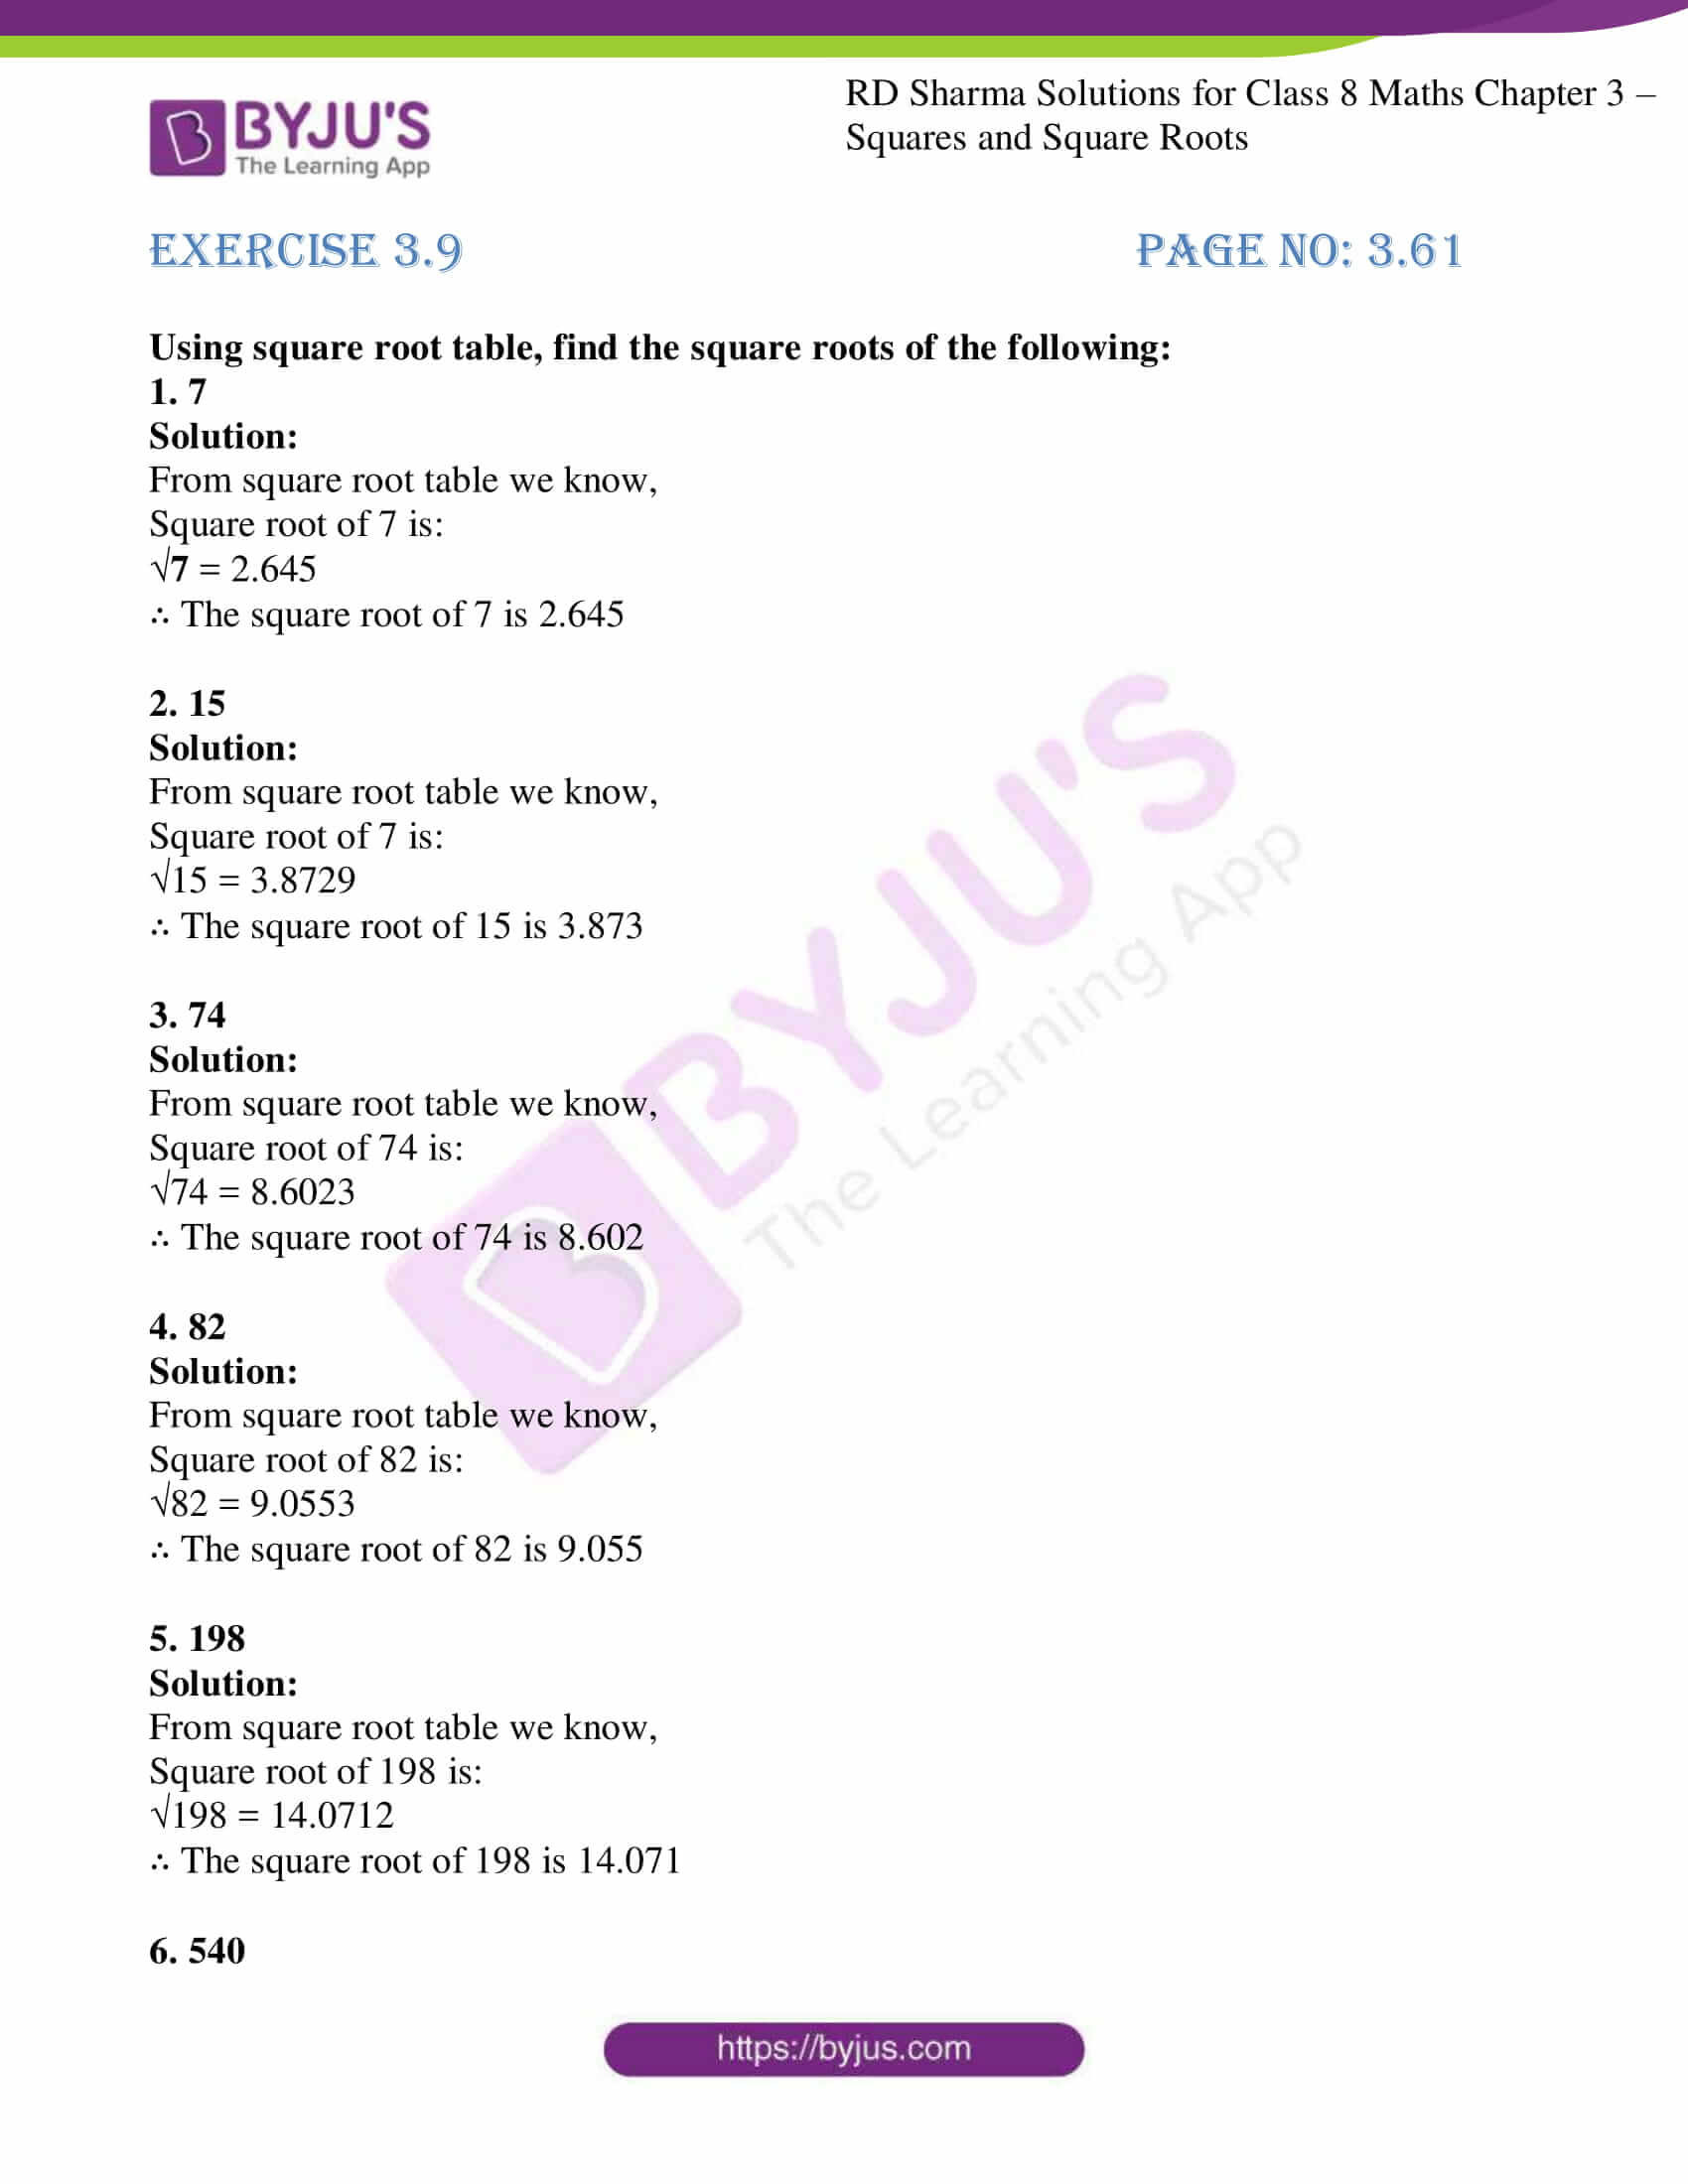 Estimating Square Root Worksheet Rd Sharma solutions for Class 8 Chapter 3 Squares and